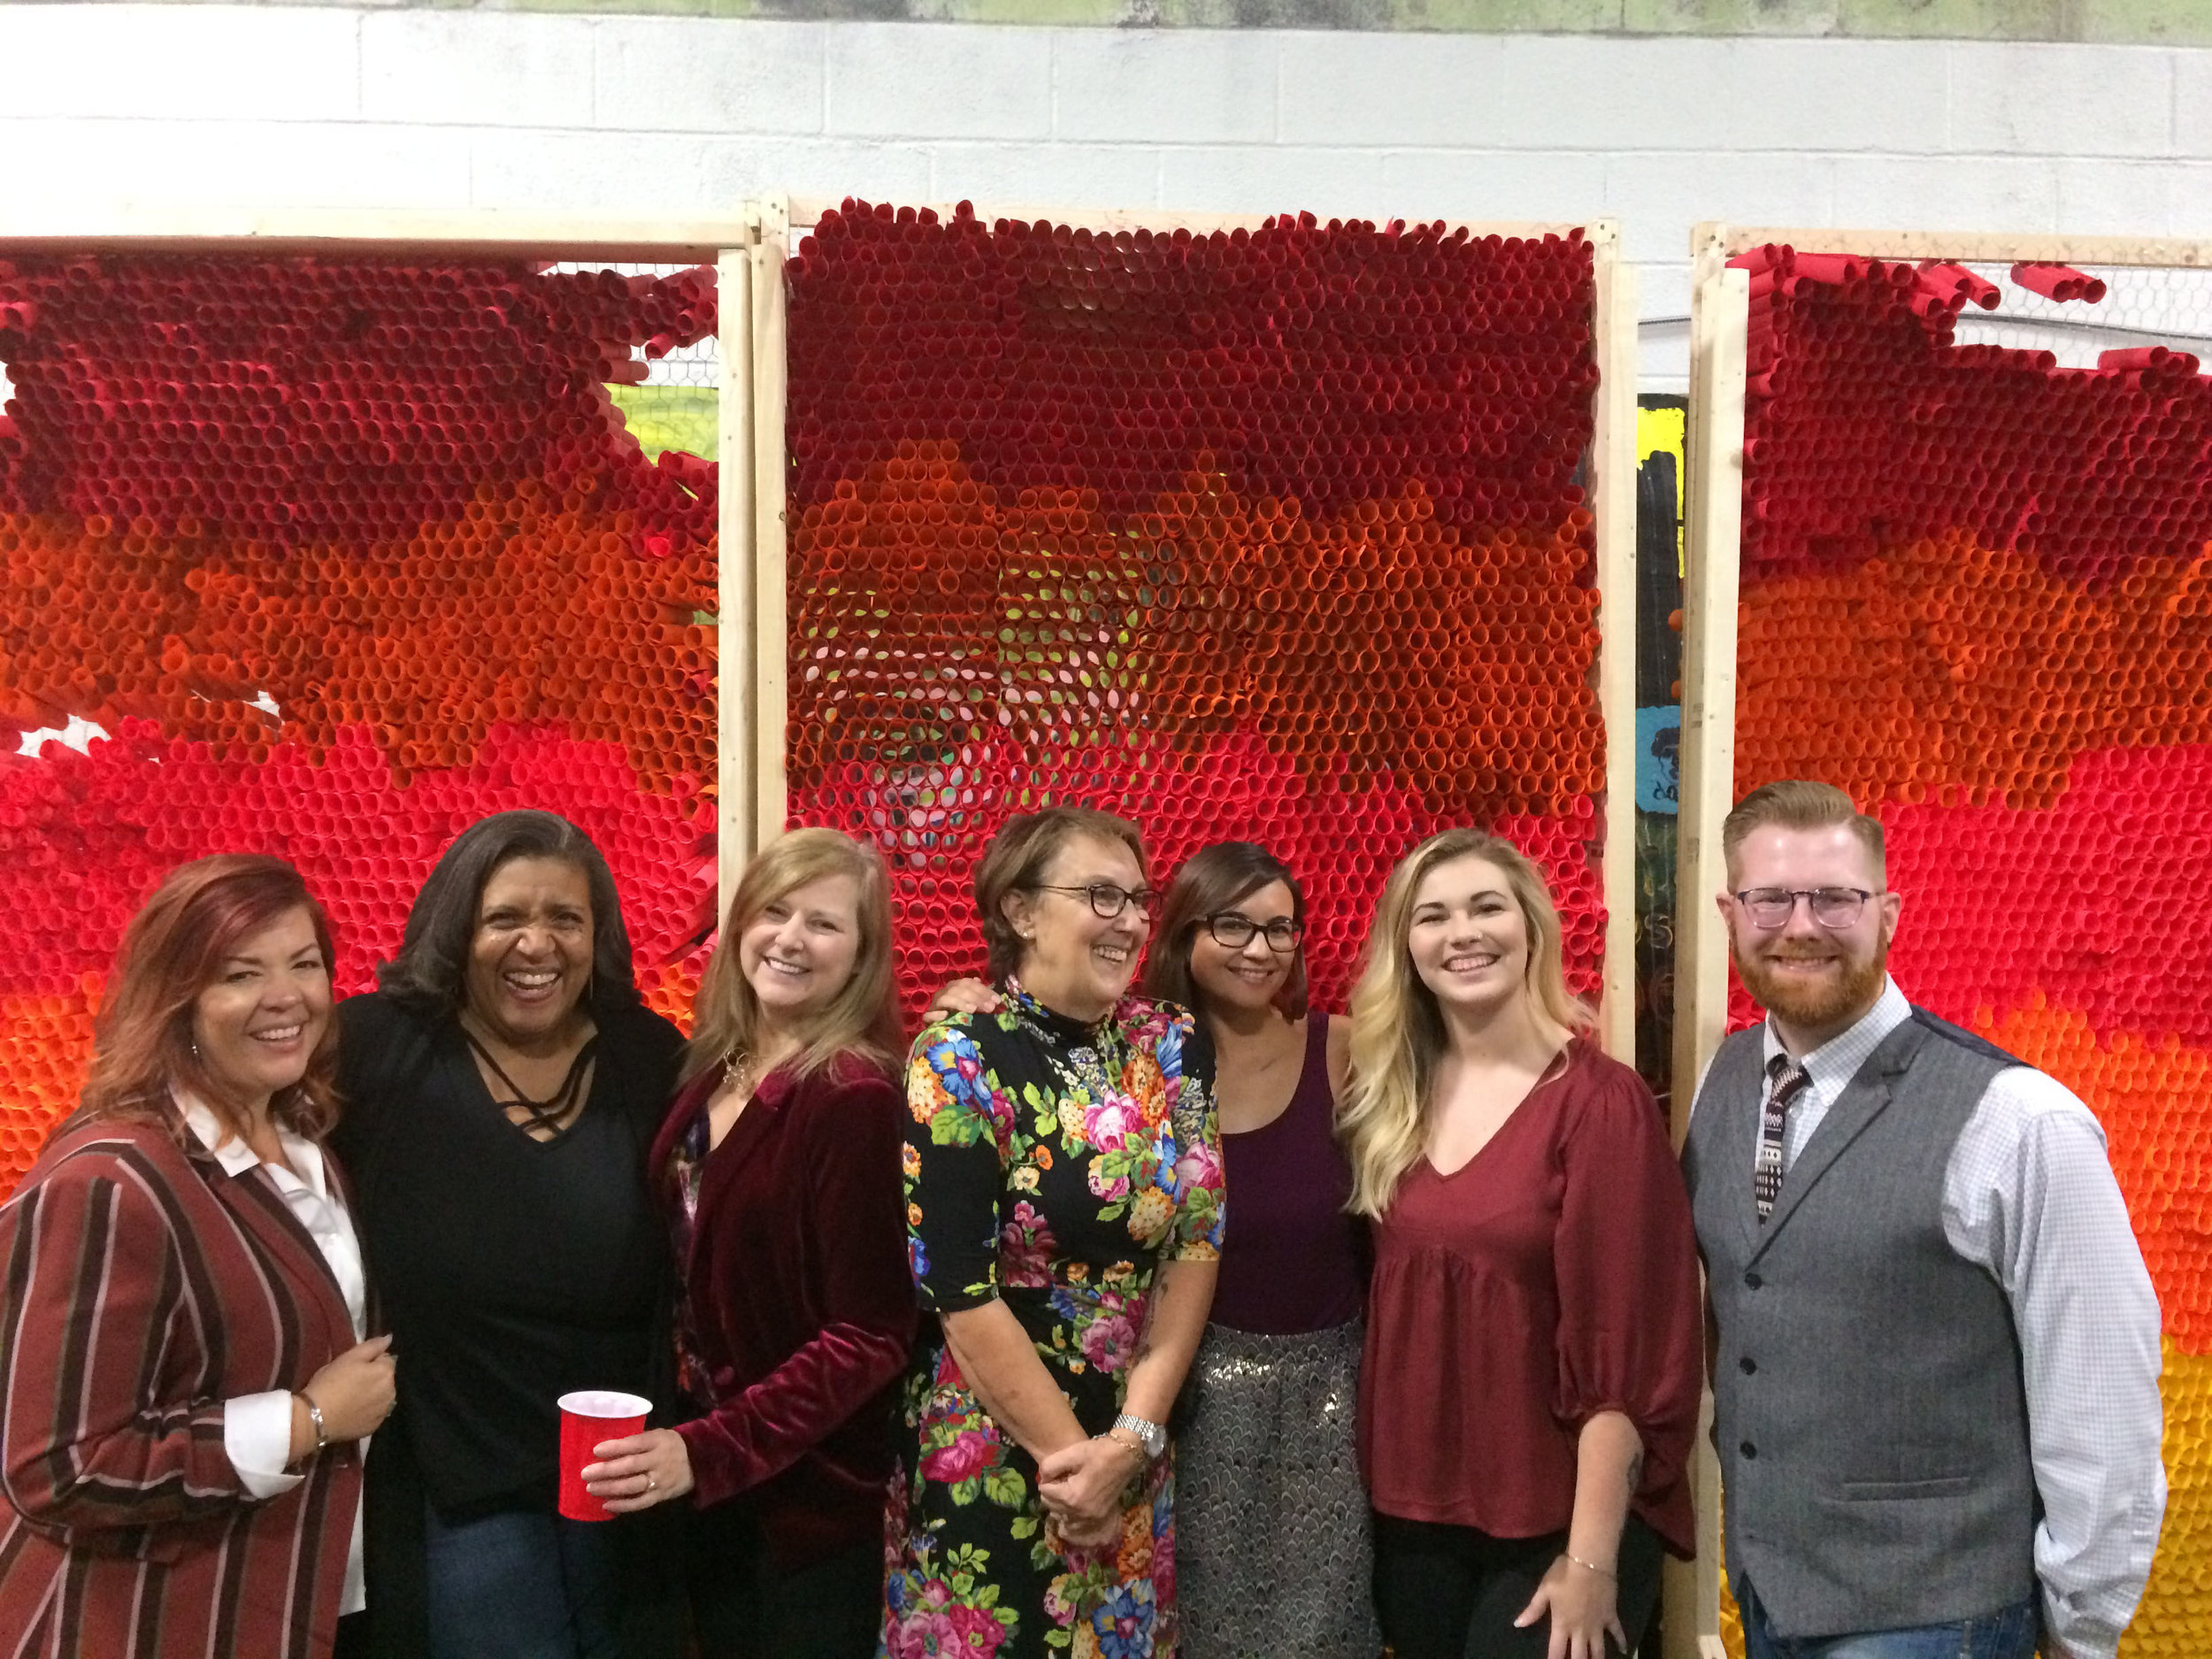 charlotte art league staff and board.jpg